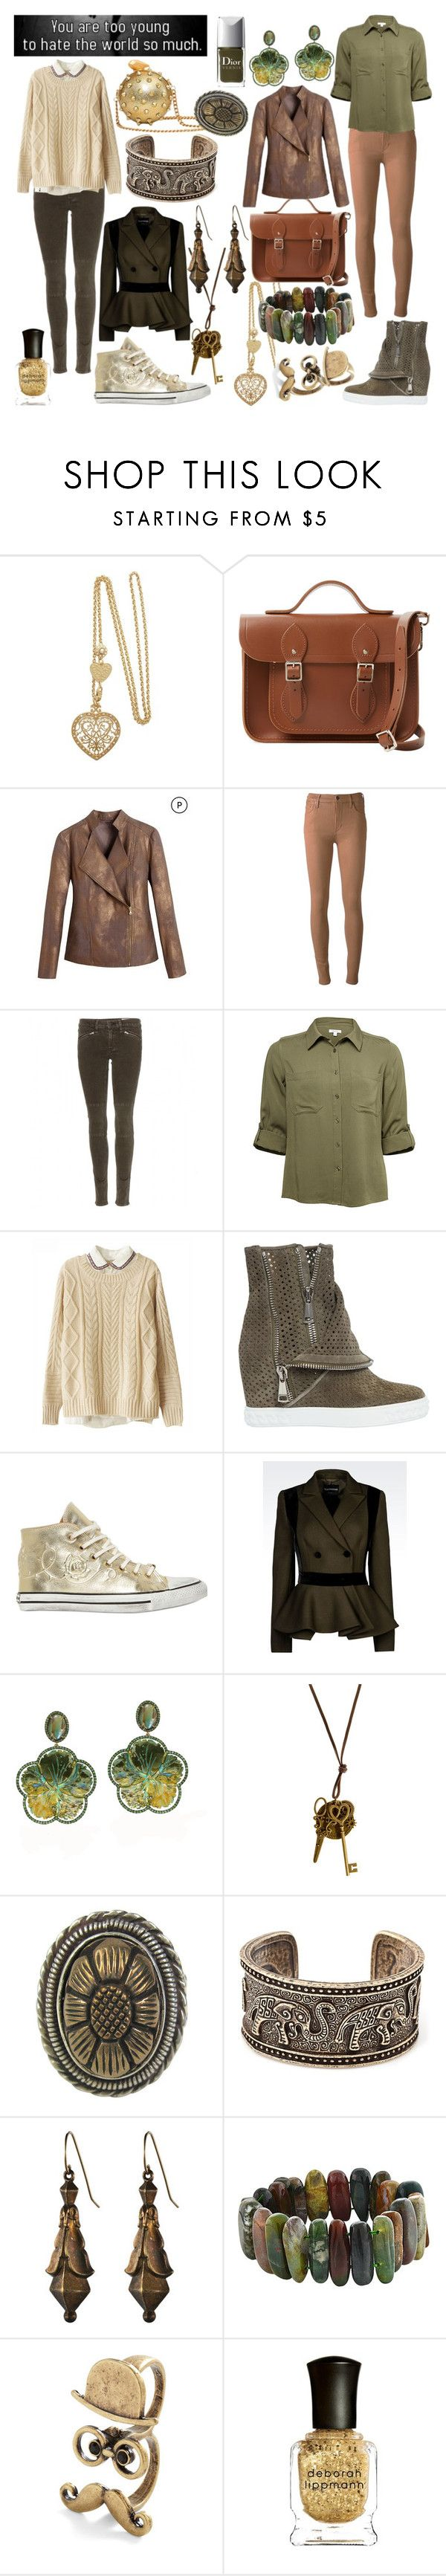 """""""Too Young"""" by ashlynknight ❤ liked on Polyvore featuring The Cambridge Satchel Company, Citizens of Humanity, rag & bone, Chicnova Fashion, Casadei, Black Dioniso, KOTUR, Emporio Armani, Goshwara and Stephen Dweck"""